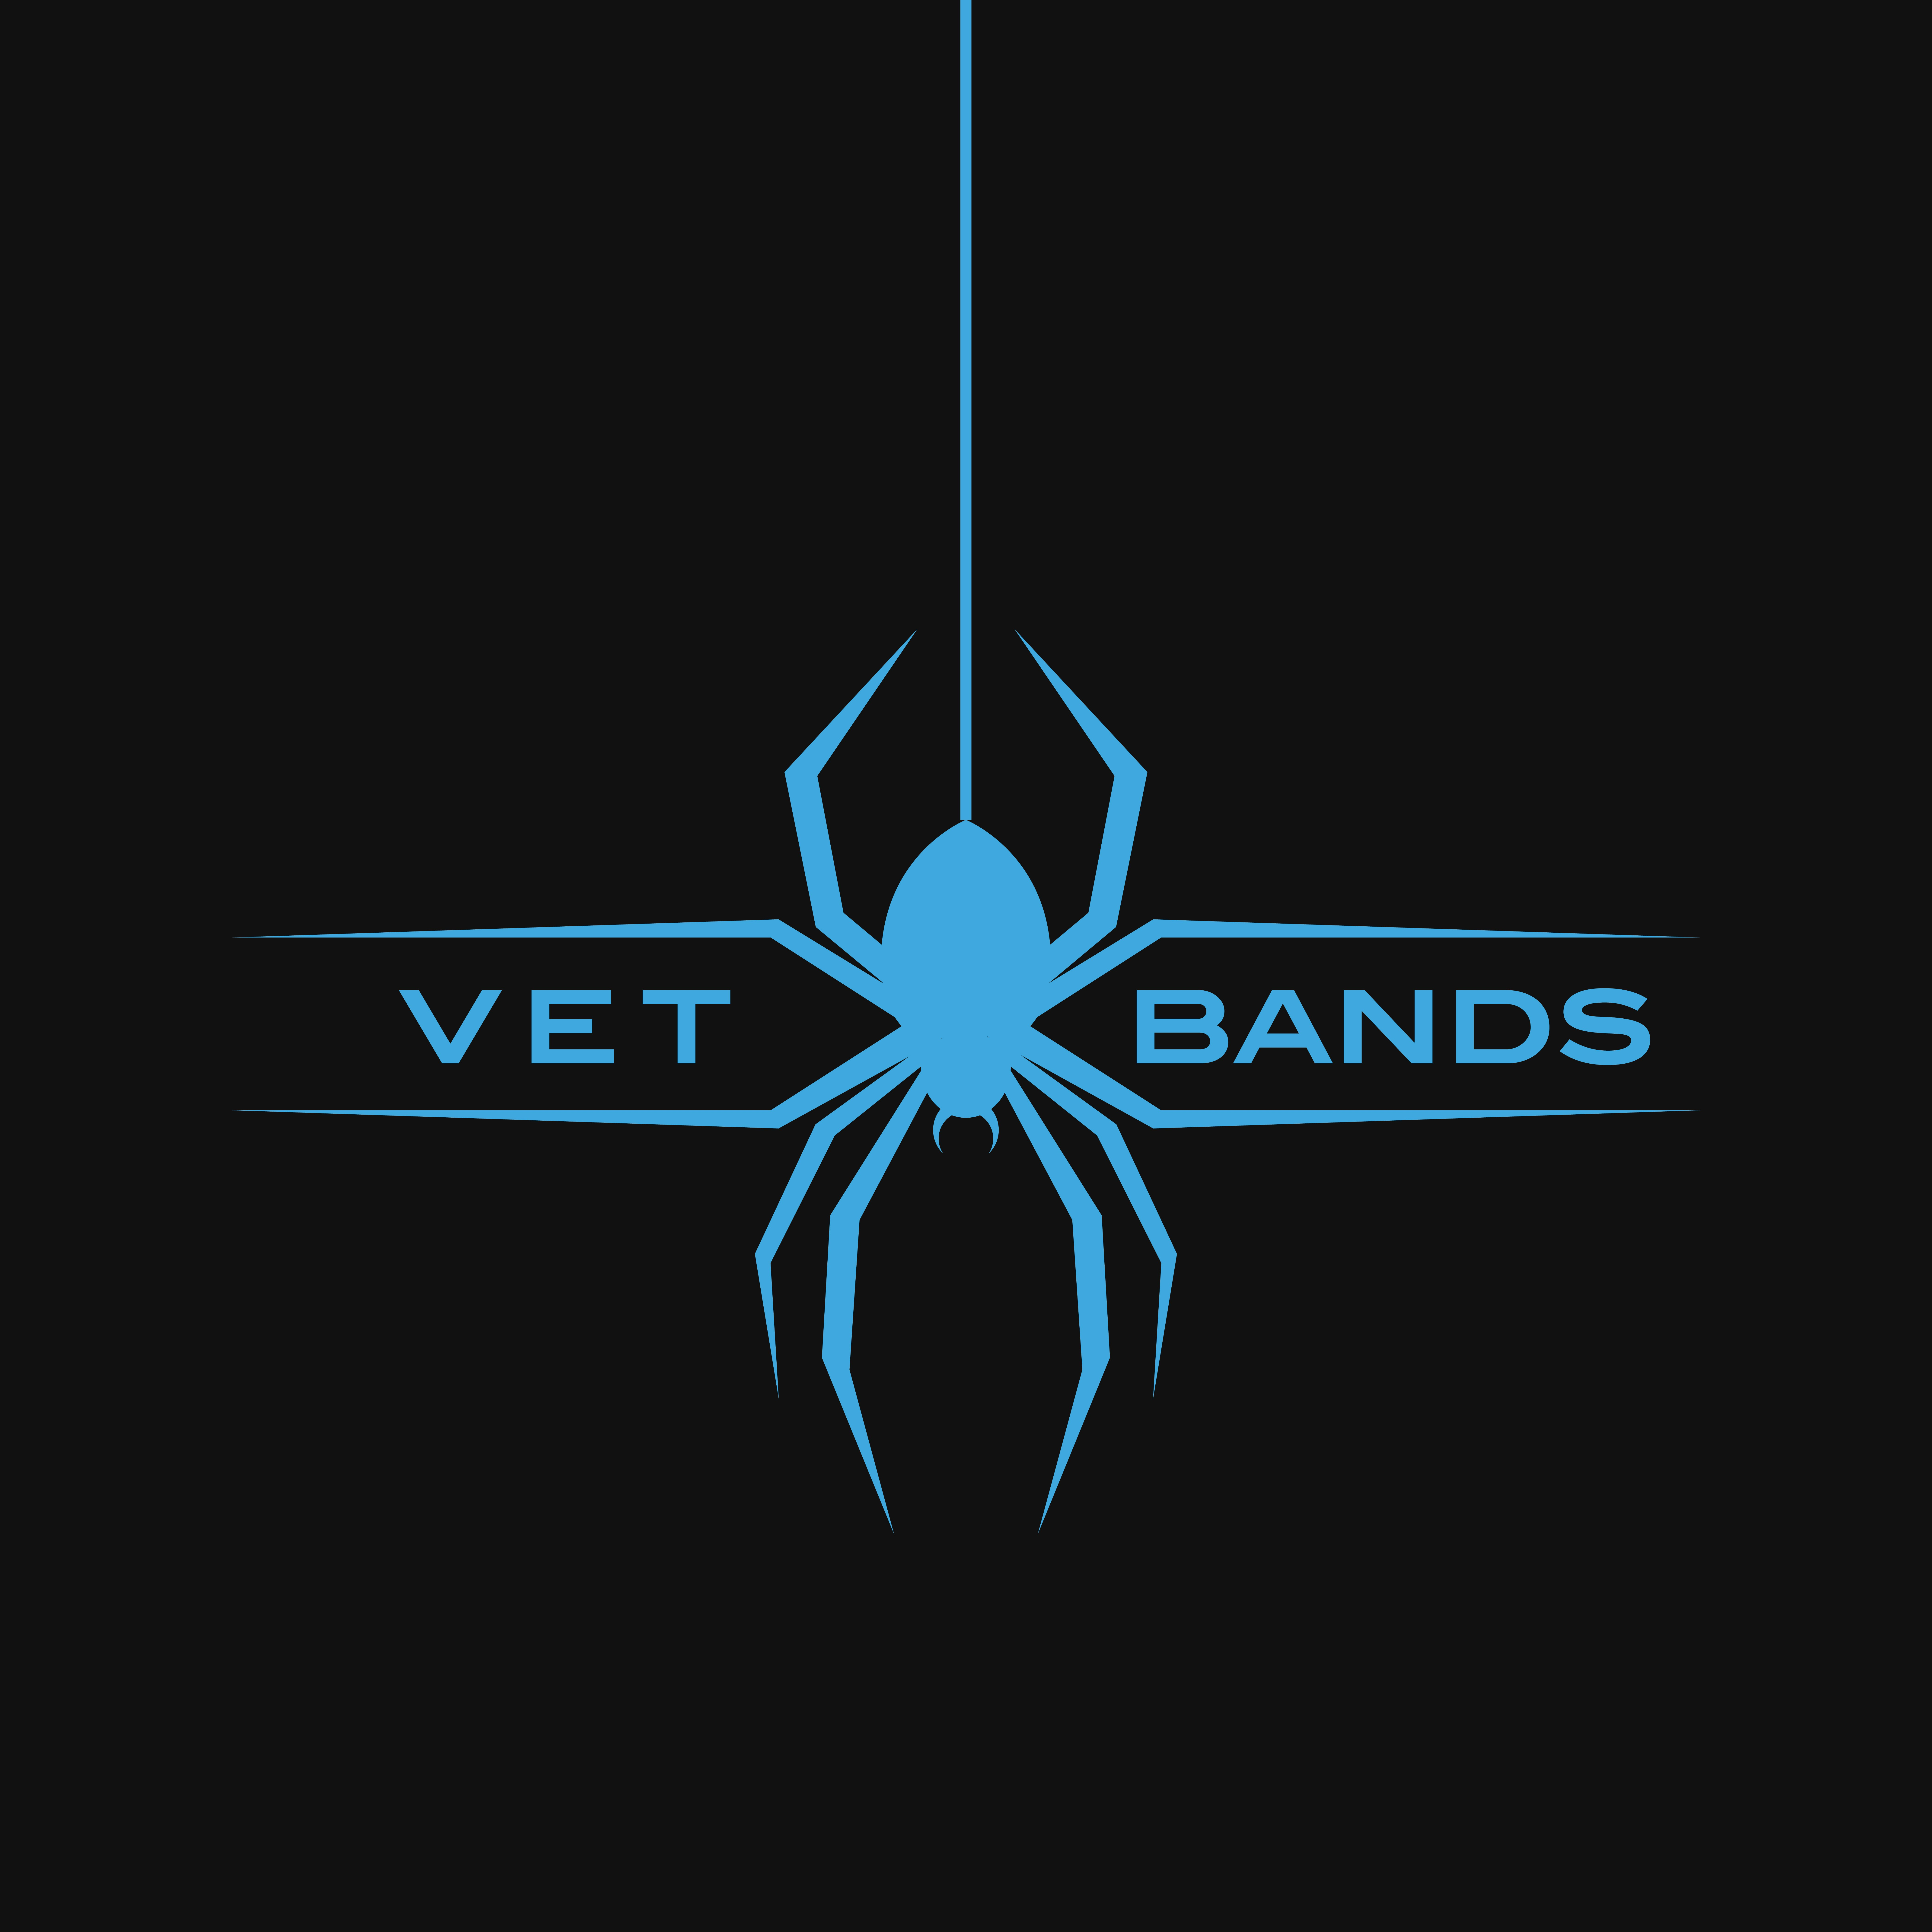 Be apart of a revolutionary veteran owned and operated business by helping us create our logo!